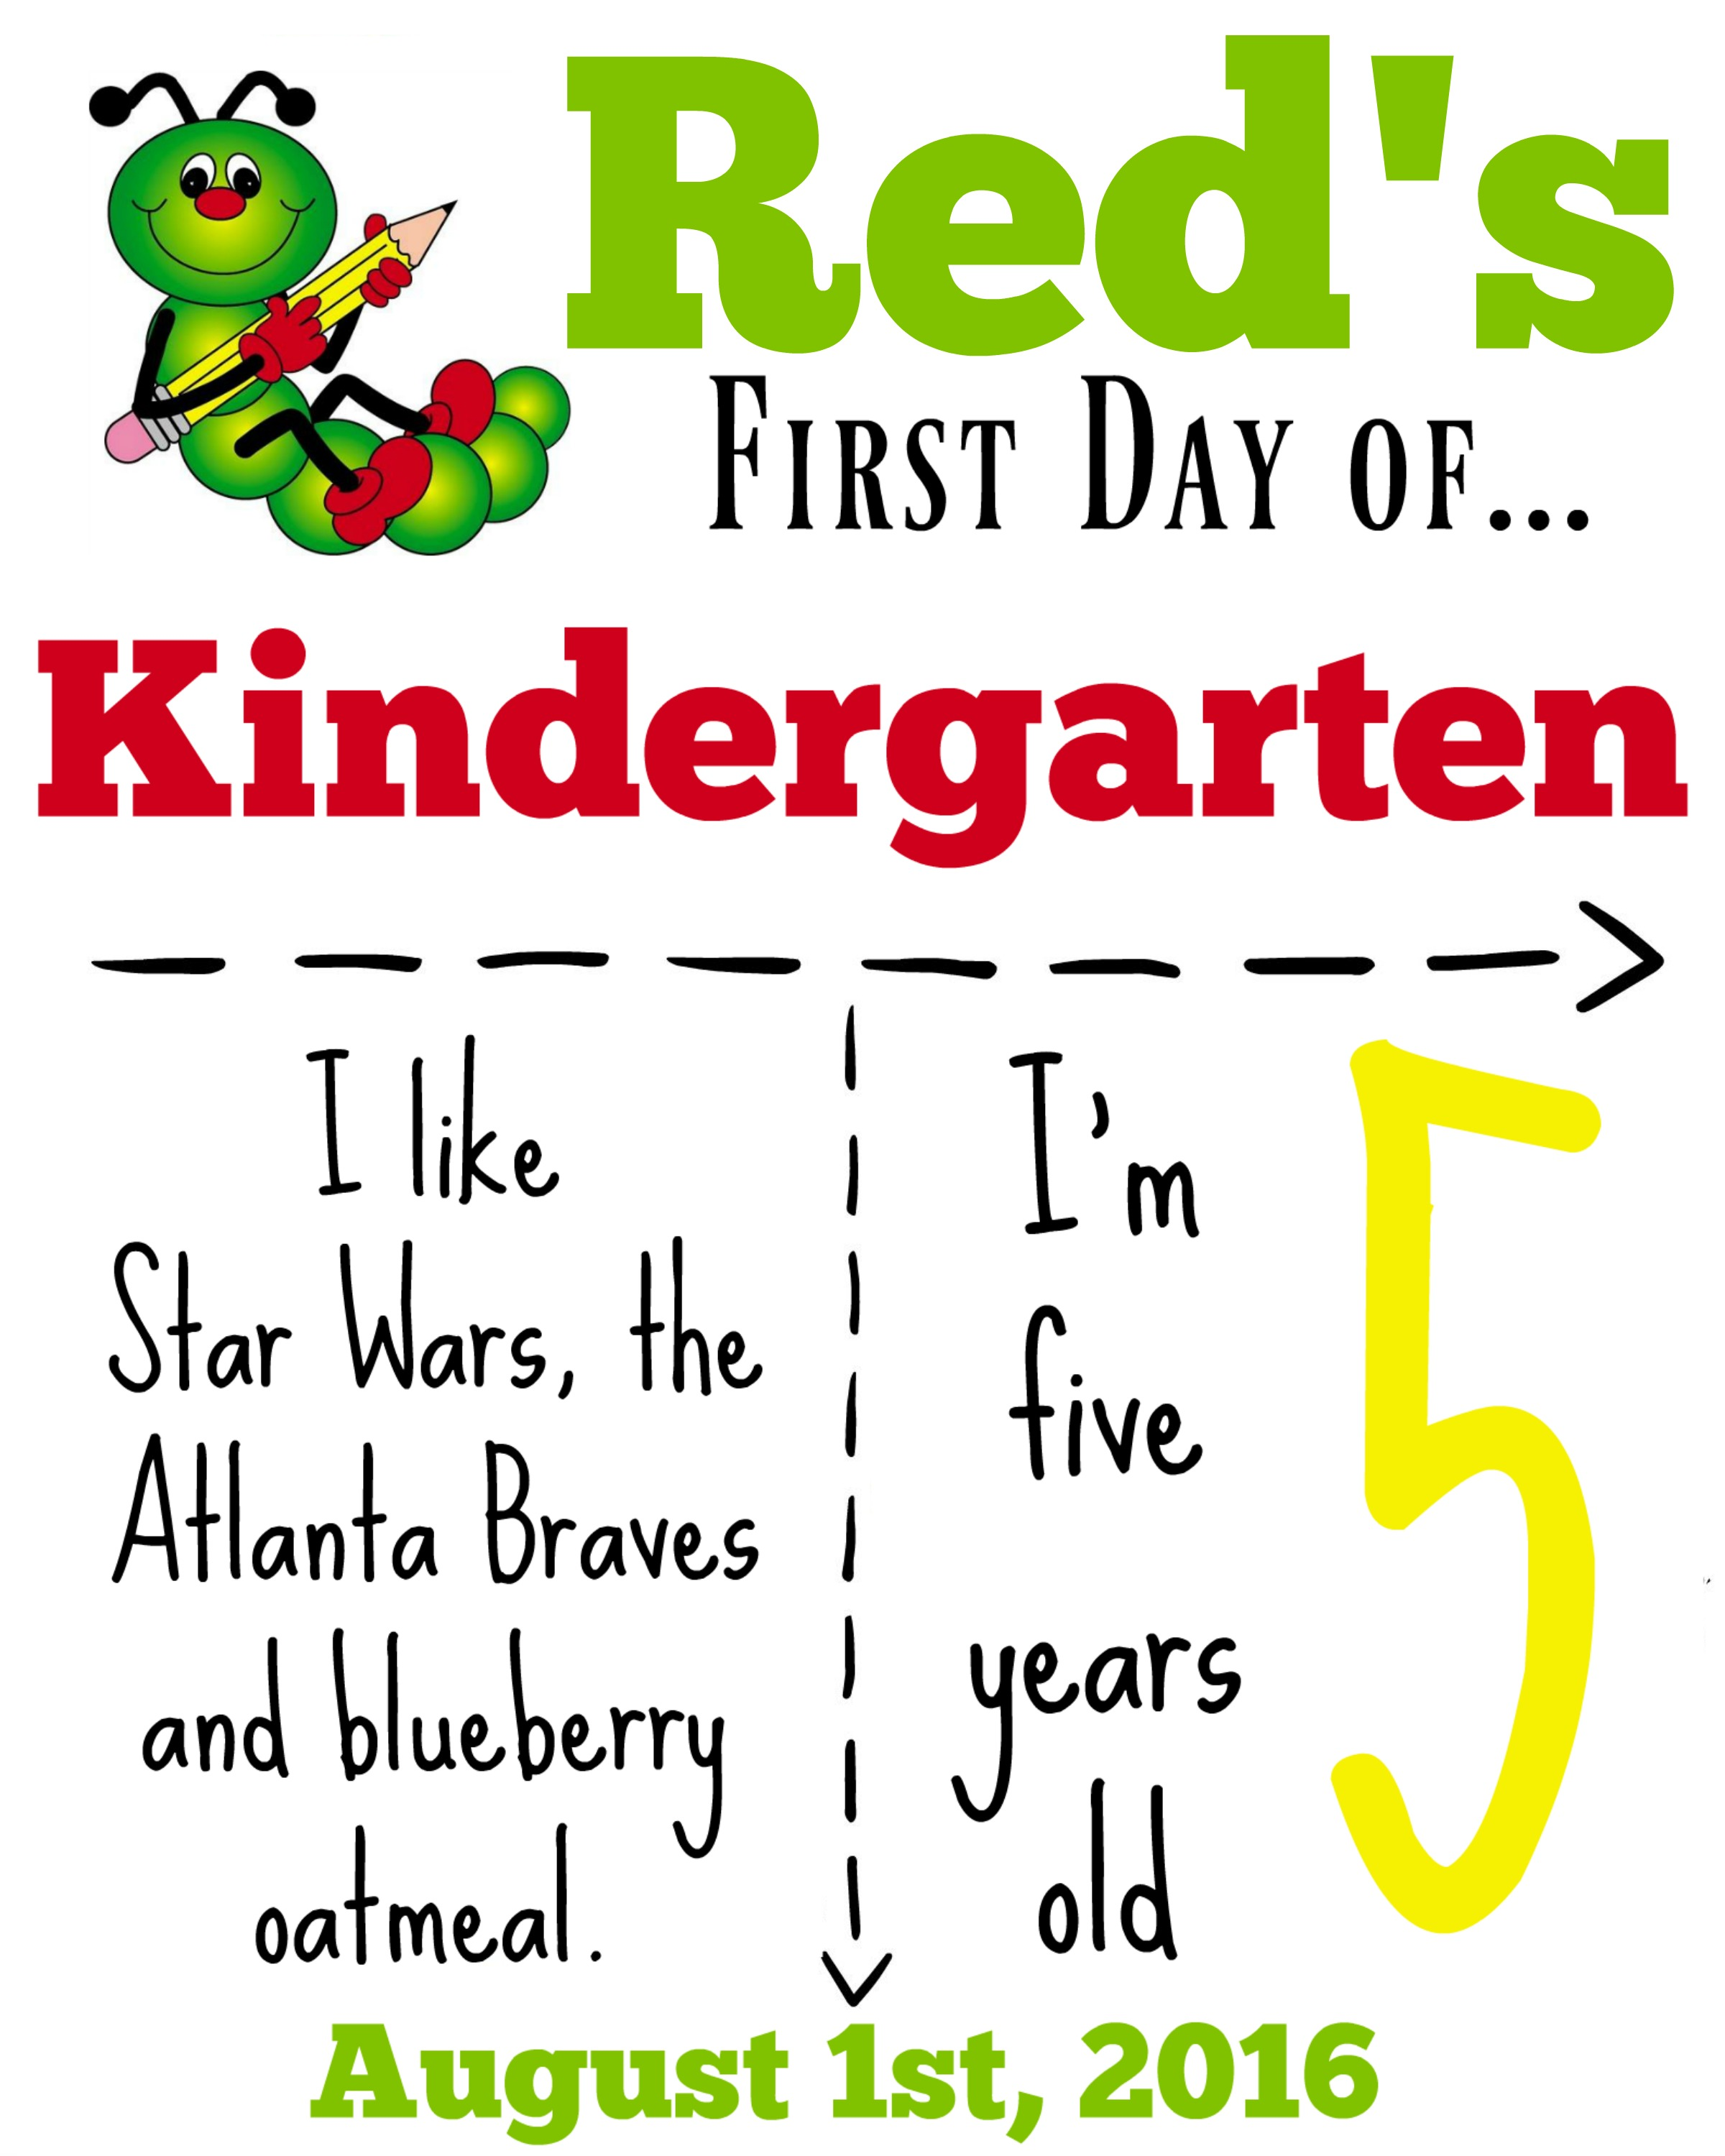 Cool Kindergarten Sign Download Day How To Make A Back To School Sign Redhead Baby Mama Atlanta Blogger Day Kindergarten Sign Template Free art First Day Of Kindergarten Sign